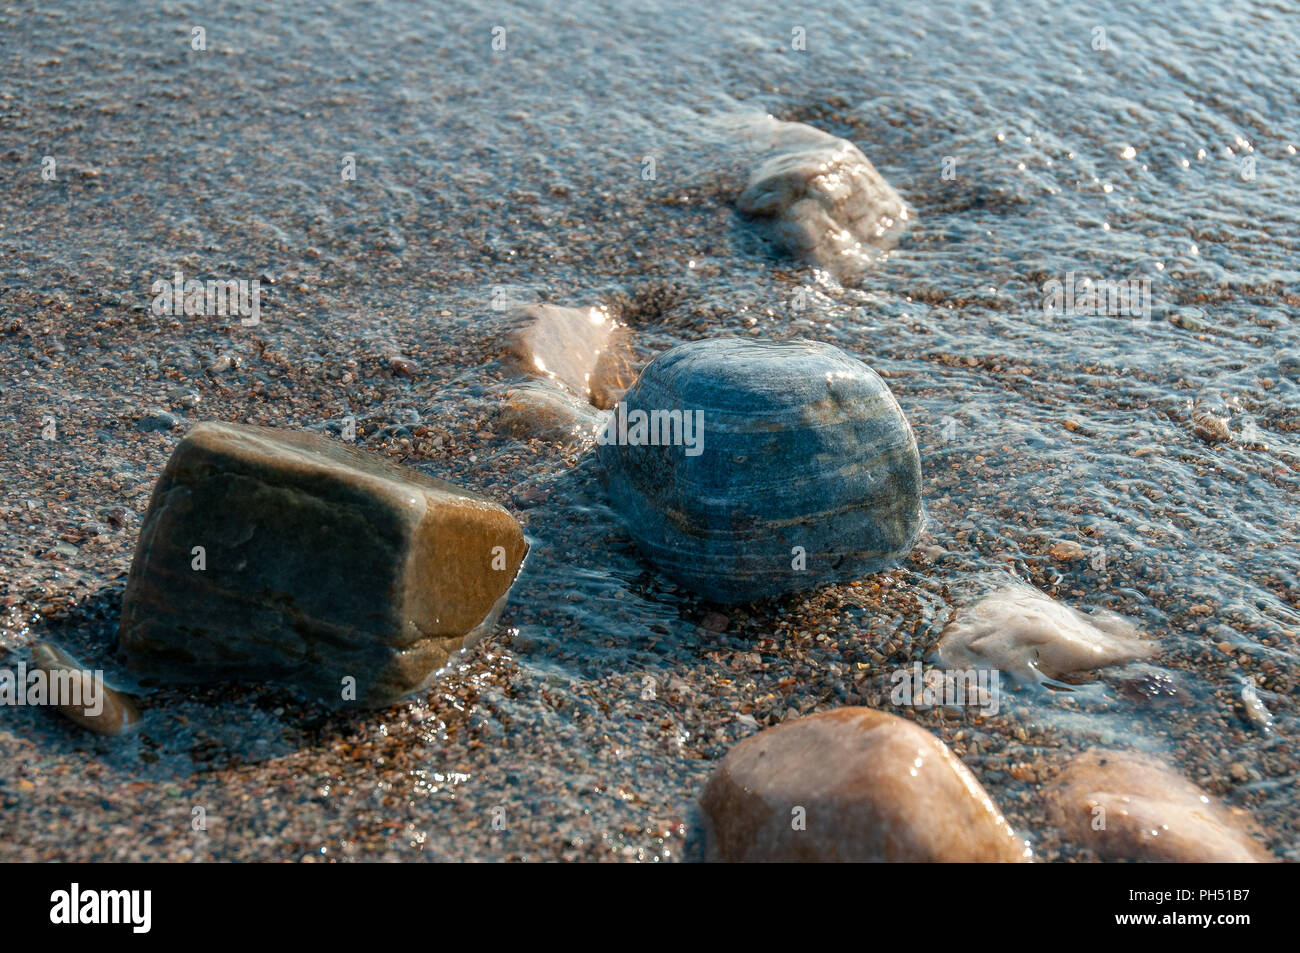 A group of pebbles by the sea shore partly immersed in sea water Stock Photo